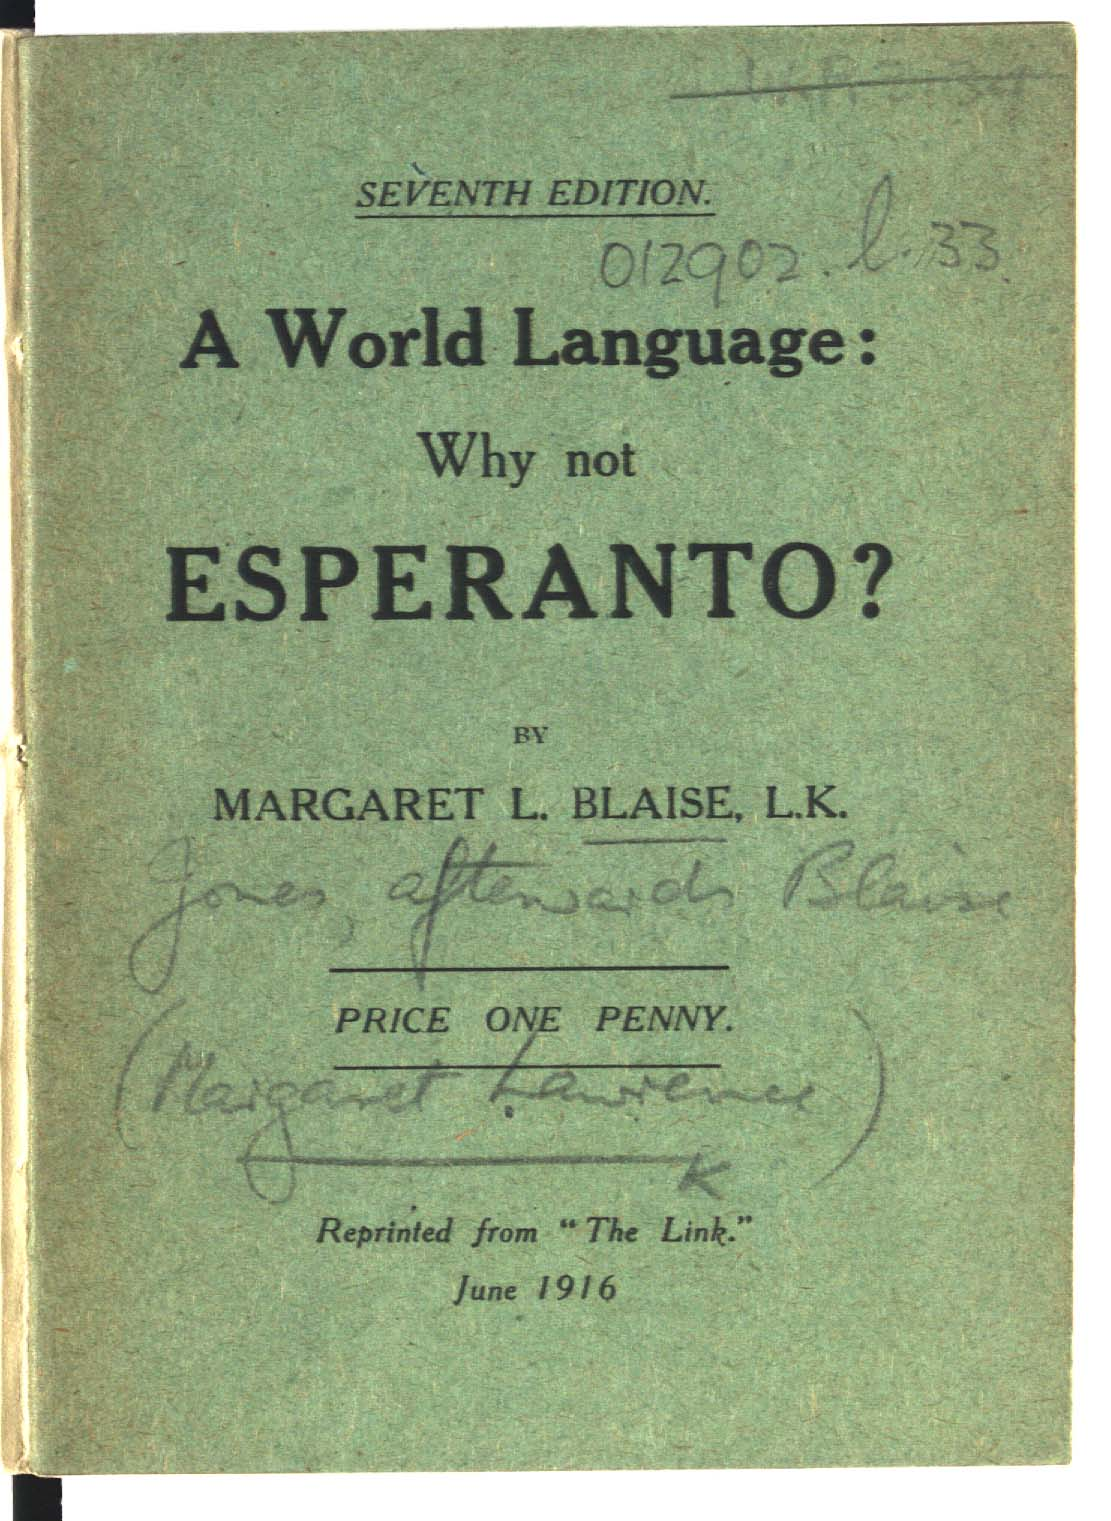 A World Language: why not Esperanto?